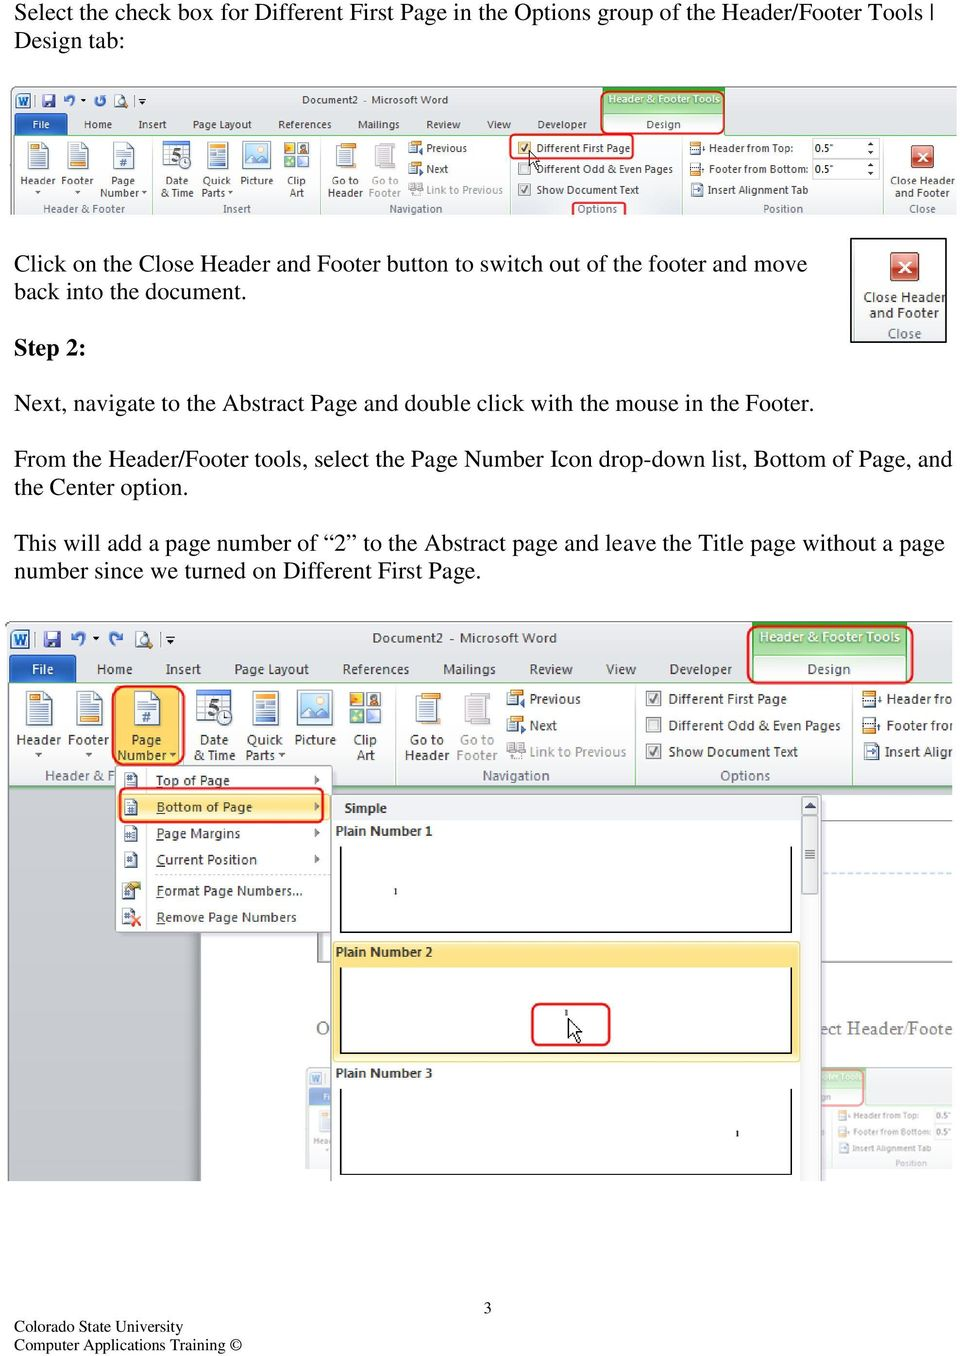 Step 2: Next, navigate to the Abstract Page and double click with the mouse in the Footer.